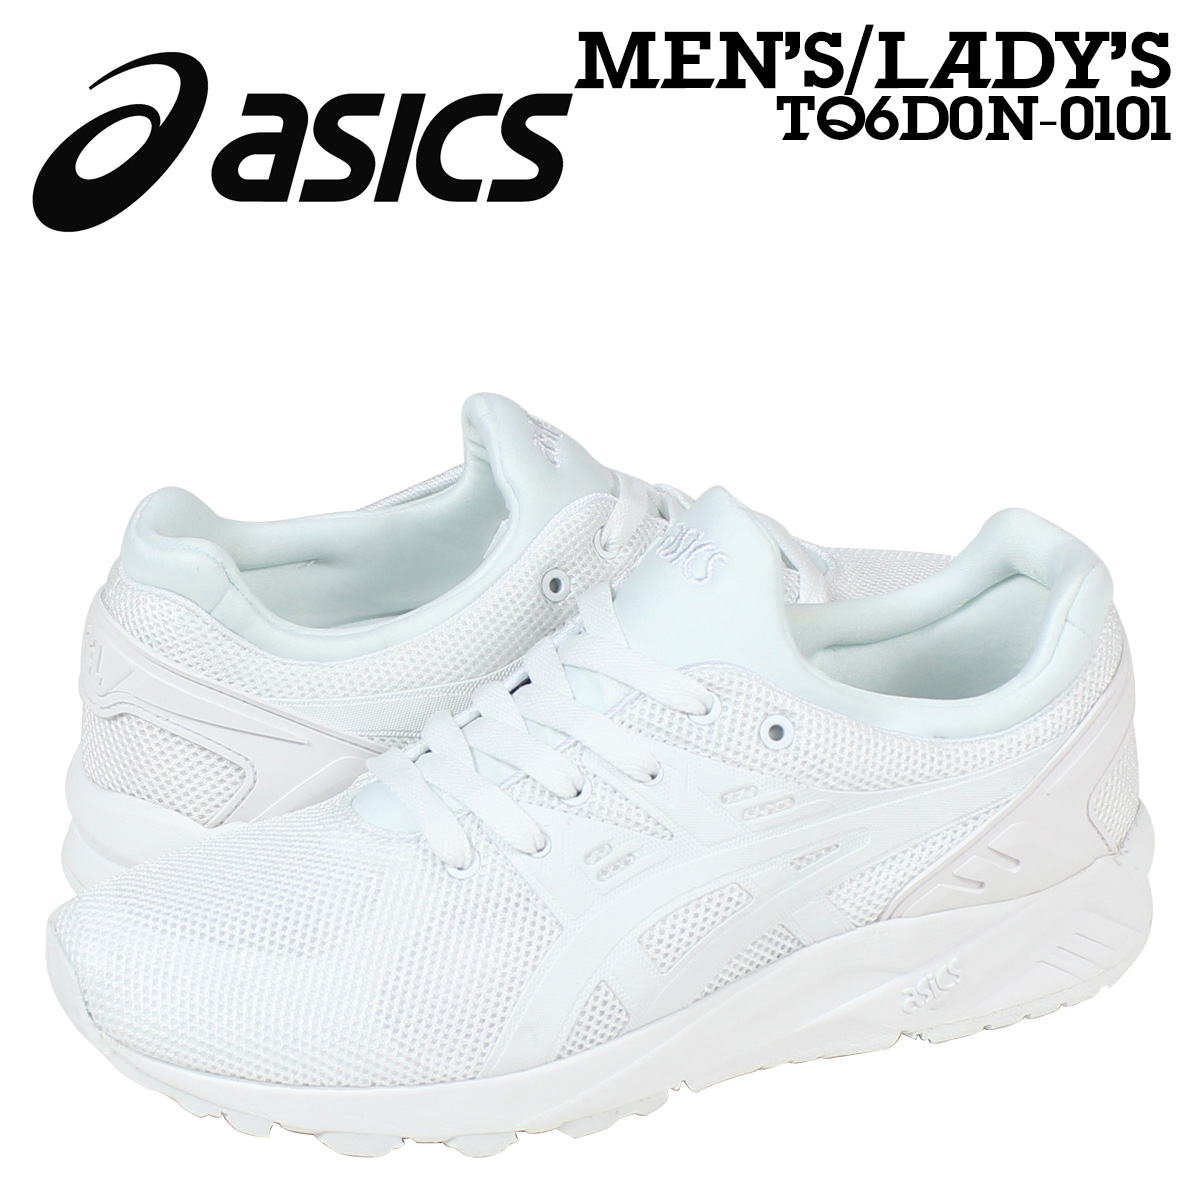 asics Tiger ASICS tiger gel Kayano trainer sneakers GEL KAYANO TRAINER EVO TQ6D0N 0101 men gap Dis shoes white